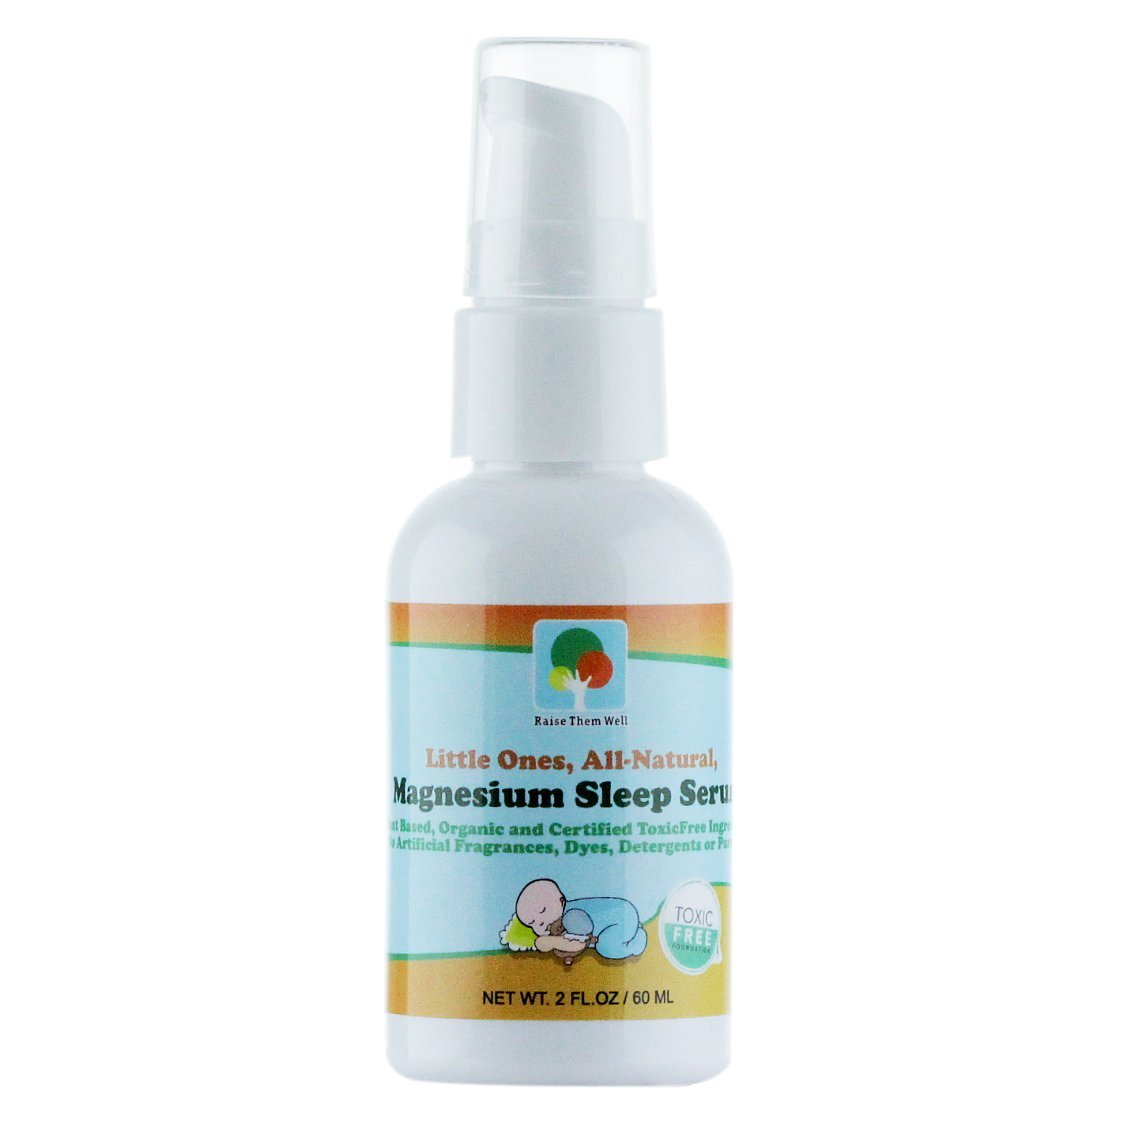 Little Ones, All-Natural, Magnesium Sleep Serum